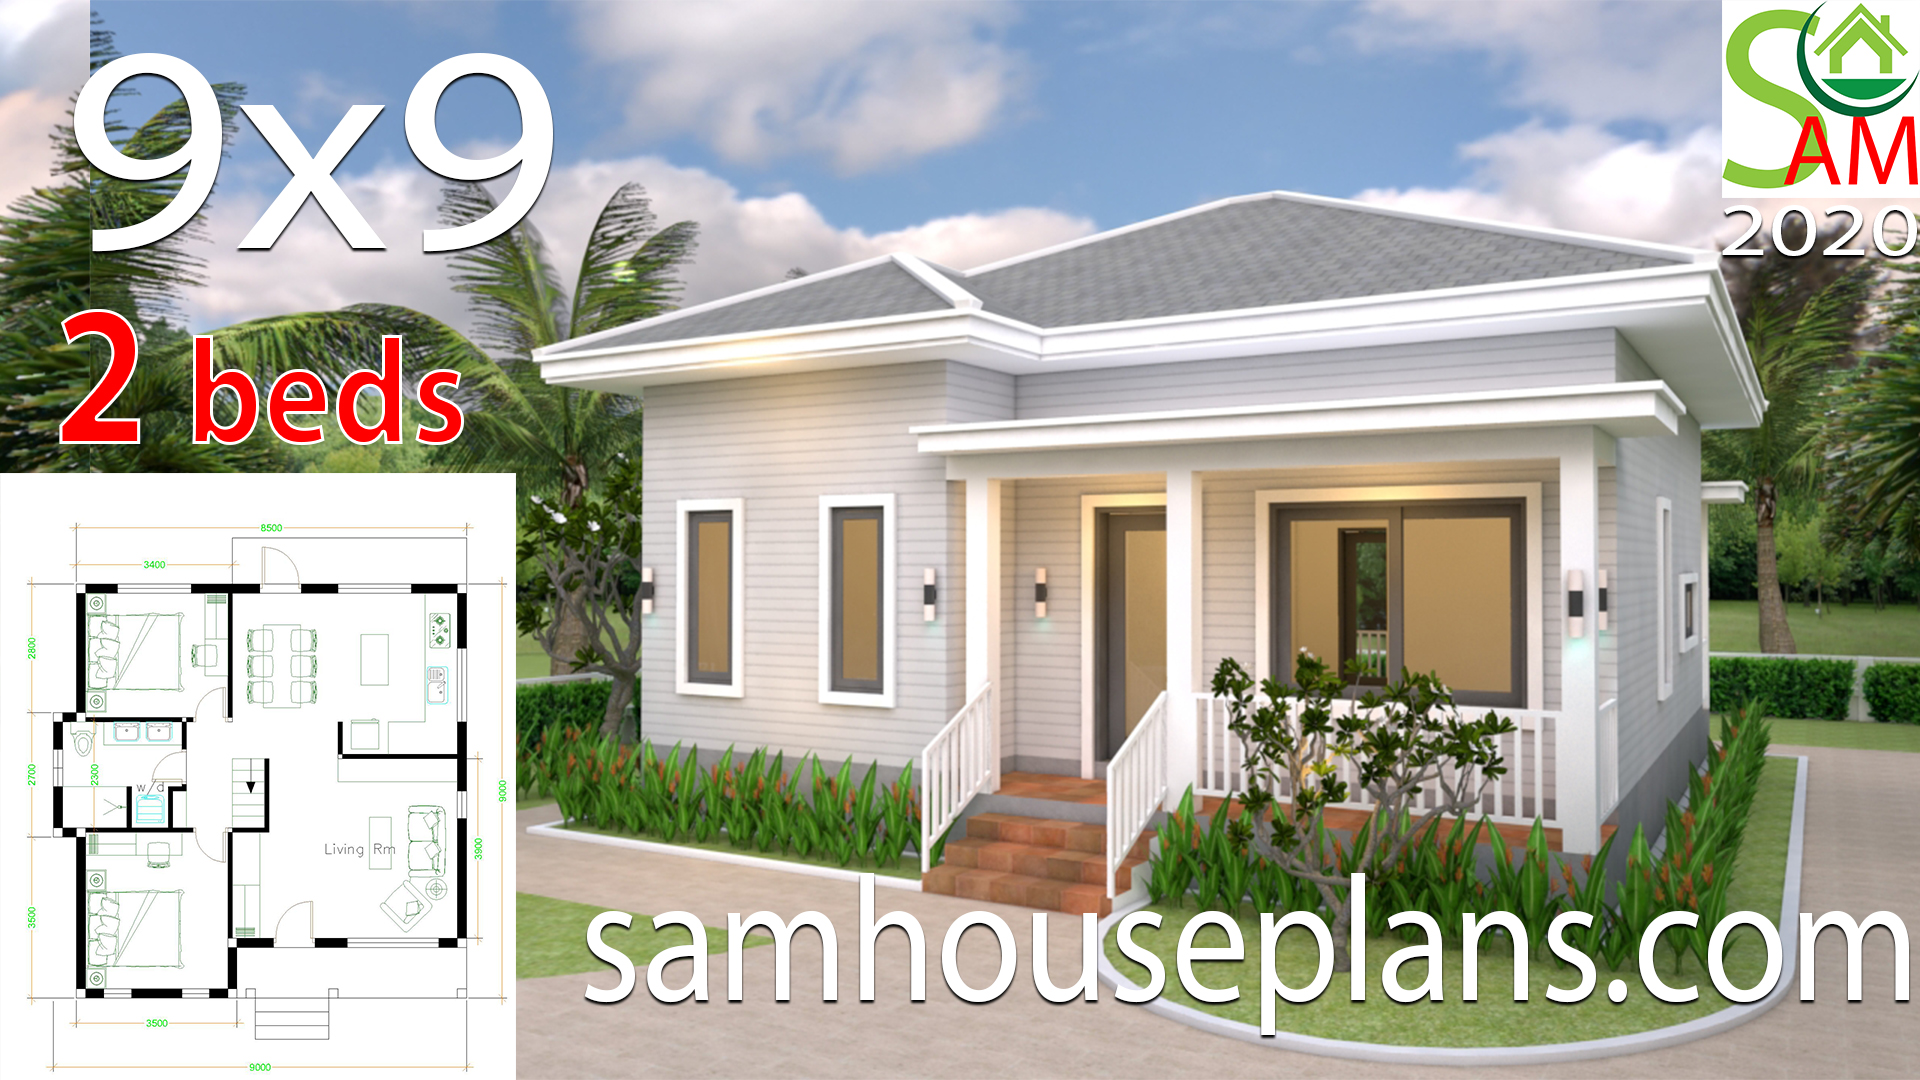 House Plans 9x9 with 2 Bedrooms Hip Roof - Sam House Plans